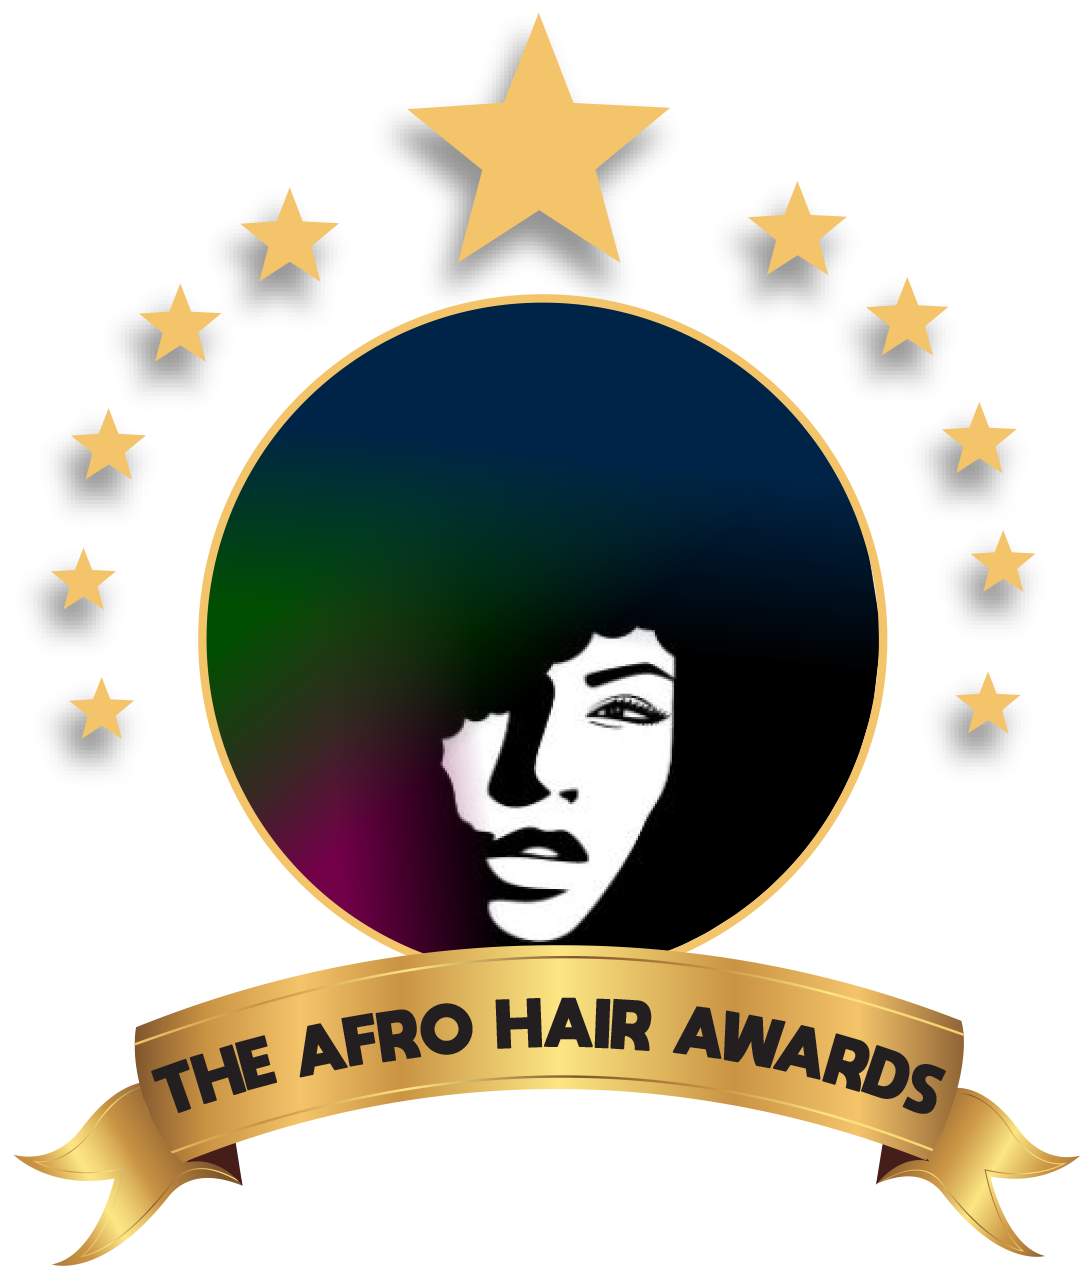 The Afro Hair Awards